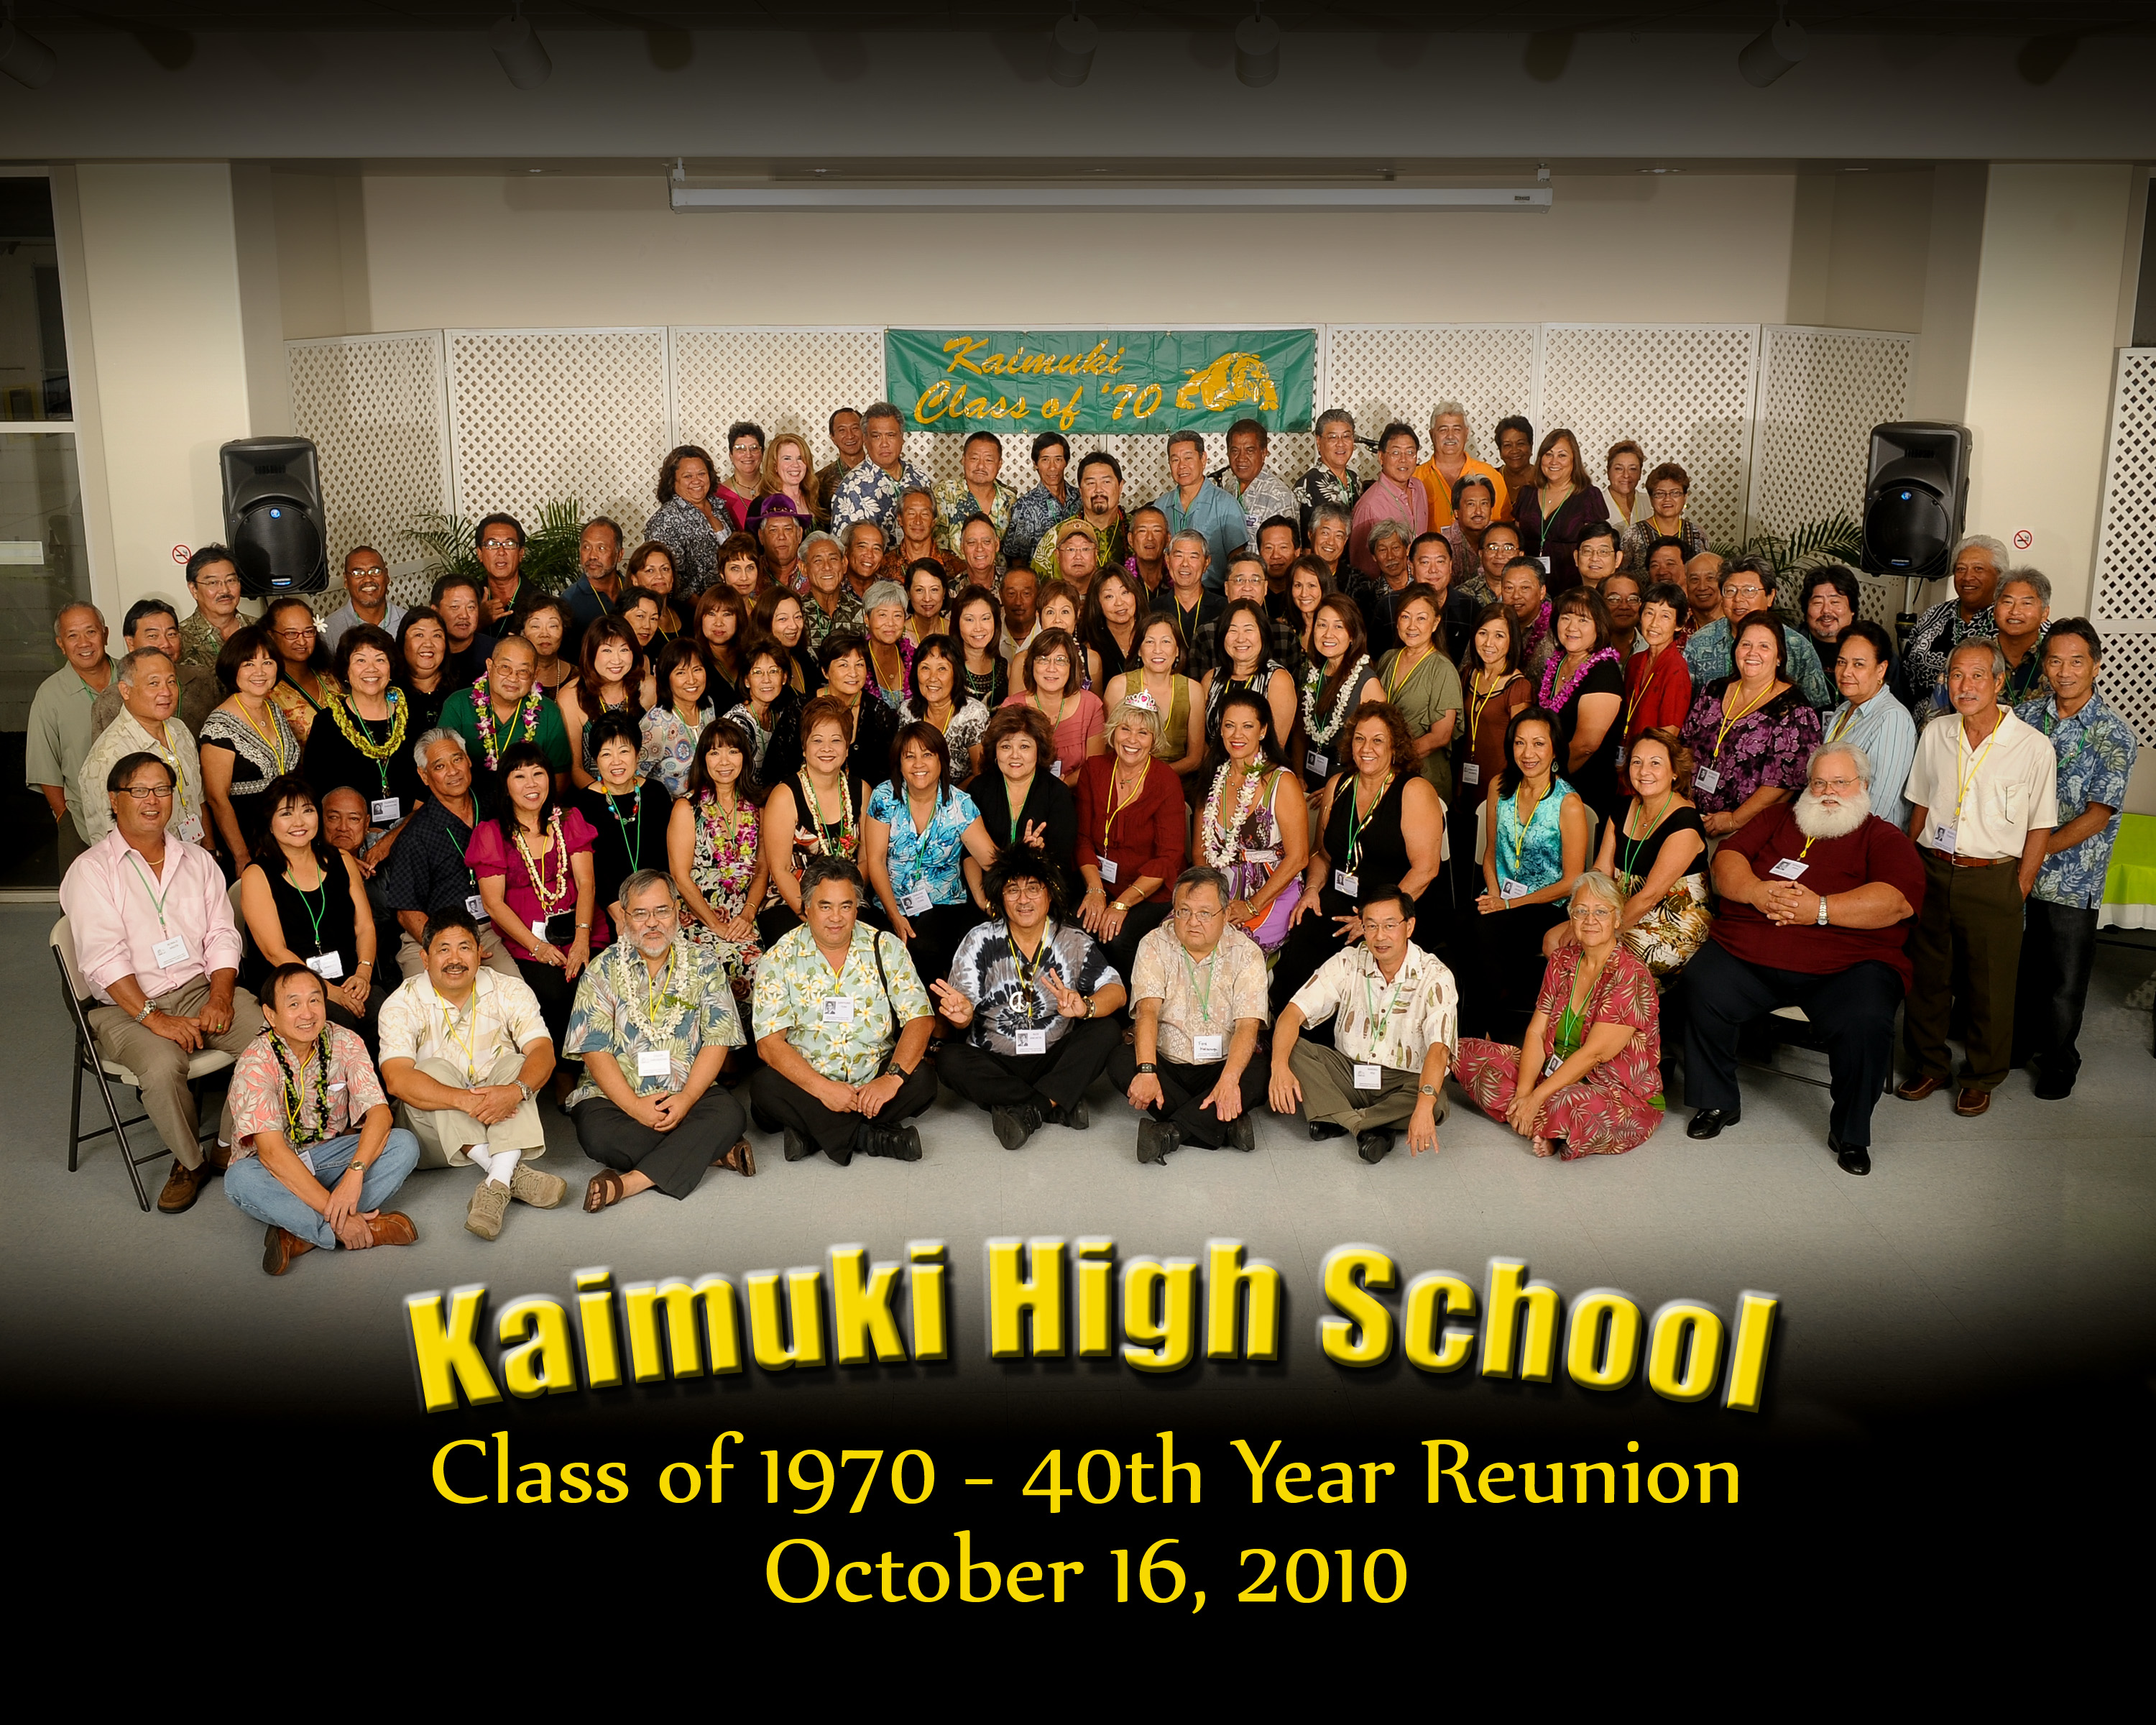 kaimuki high class of 1970